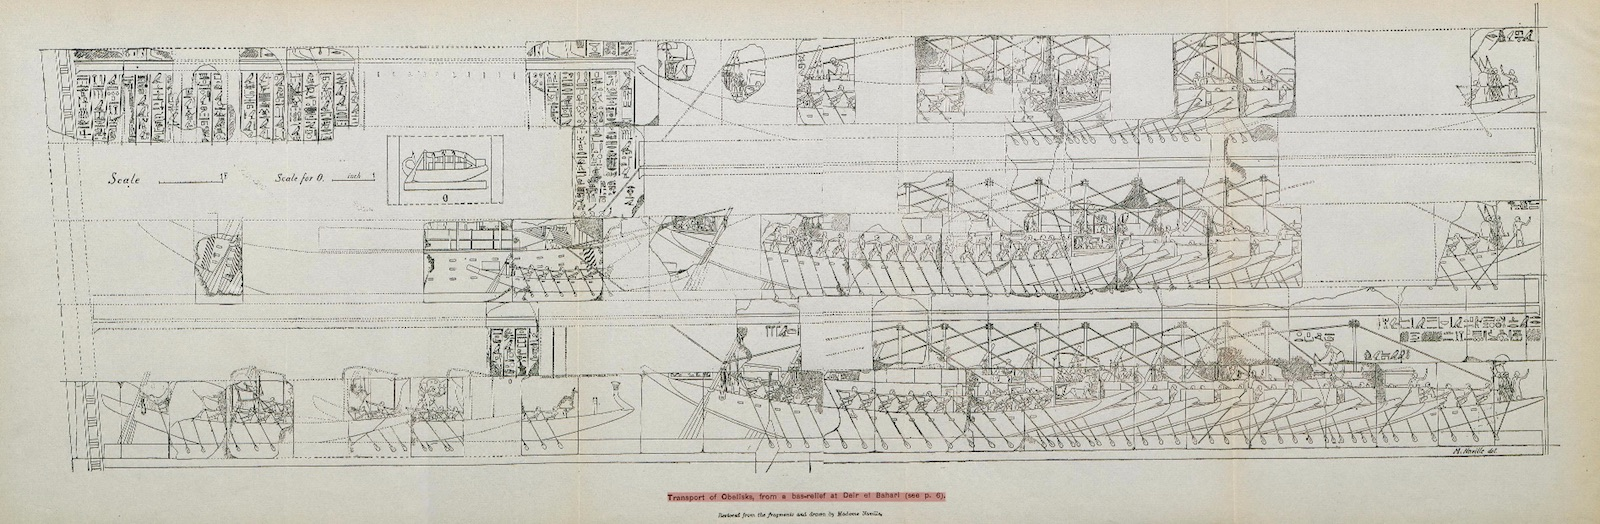 Line drawing showing a schematic diagram of how an ancient obelisk would be transported by ship